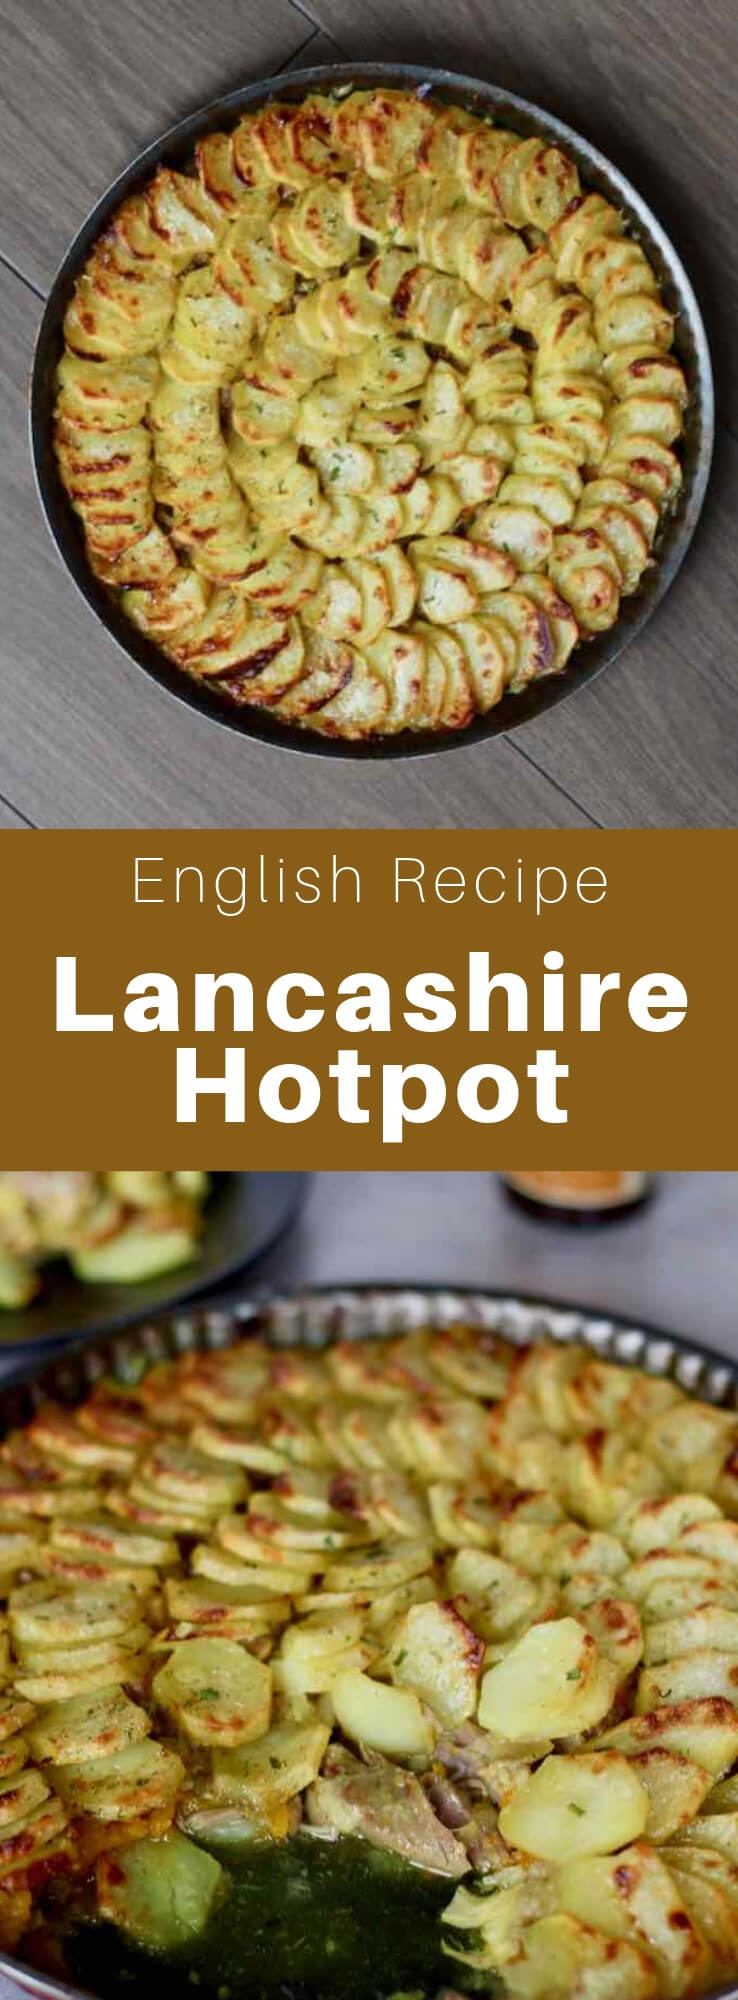 The Lancashire hotpot is a typical dish from northwestern England, long simmered in the oven, mainly composed of lamb and onion topped with sliced ​​potatoes. #UnitedKingdom #EnglishCuisine #BritishCuisine #EnglishFood #BritishFood #EnglishRecipe #BritishRecipe #WorldCuisine #196flavors